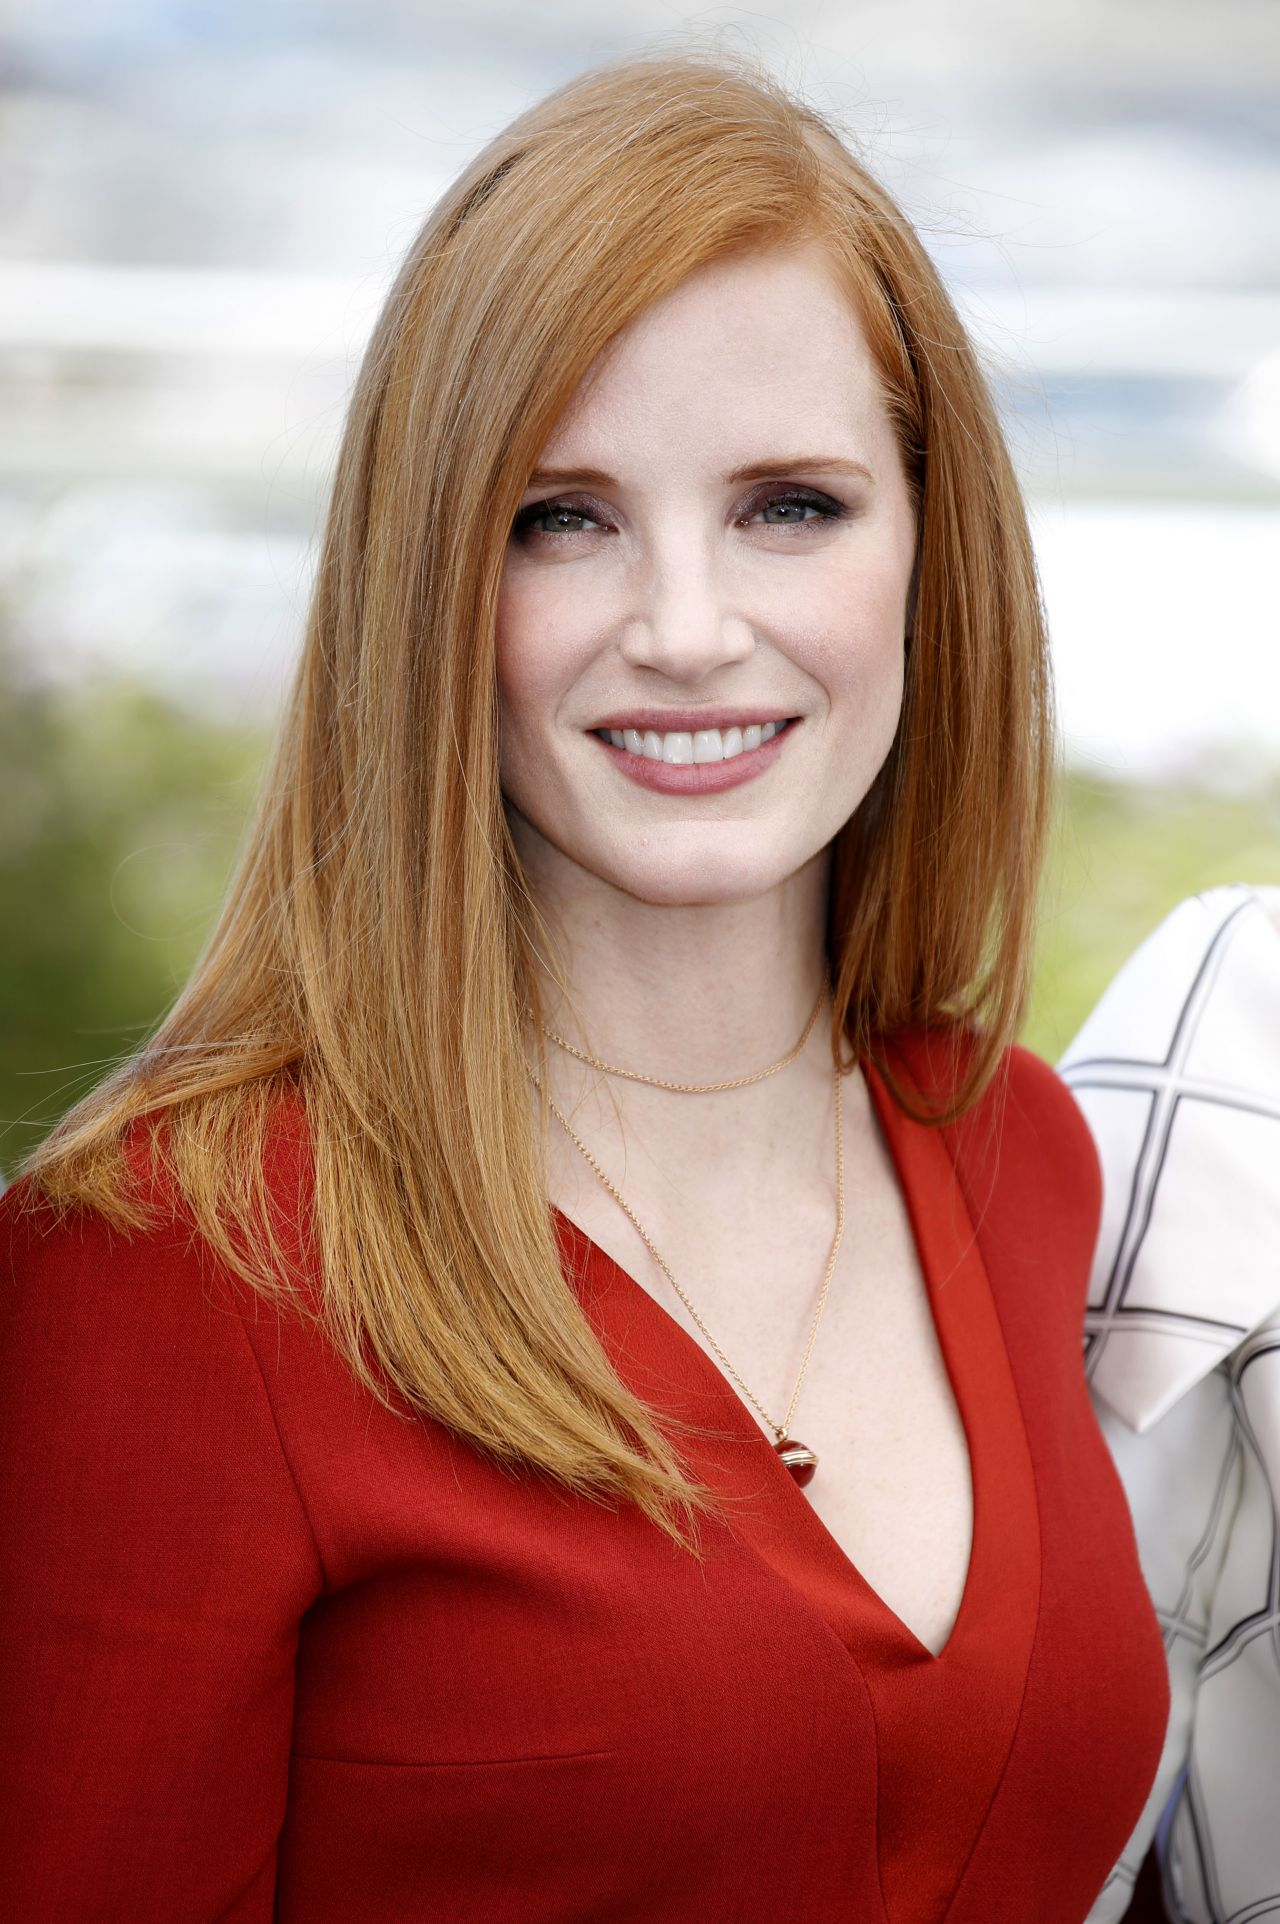 Jessica Chastain 70th Cannes Film Festival Jury Photocal